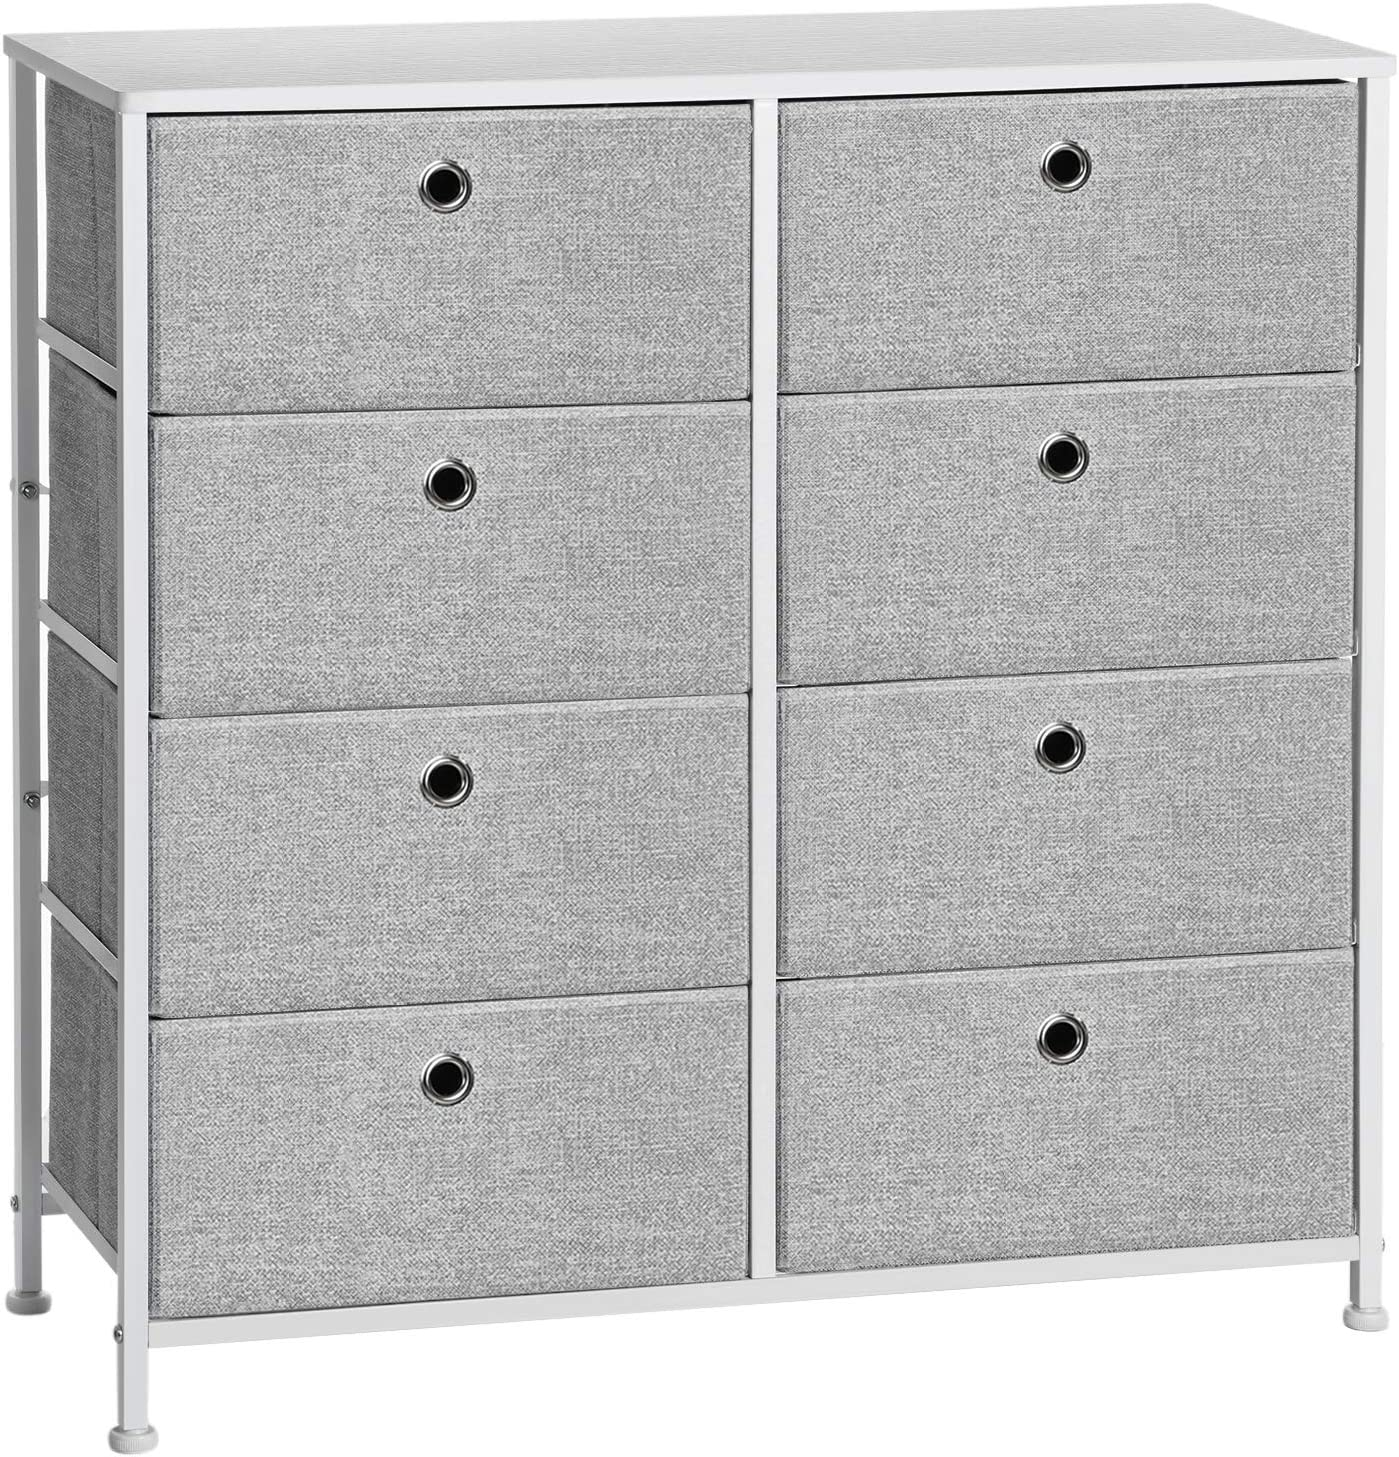 SONGMICS 4-Tier, Storage Dresser with 8 Easy Pull Fabric Drawers and Wooden Tabletop for Closets, Nursery, Dorm Room, Light Grey and White ULTS24W